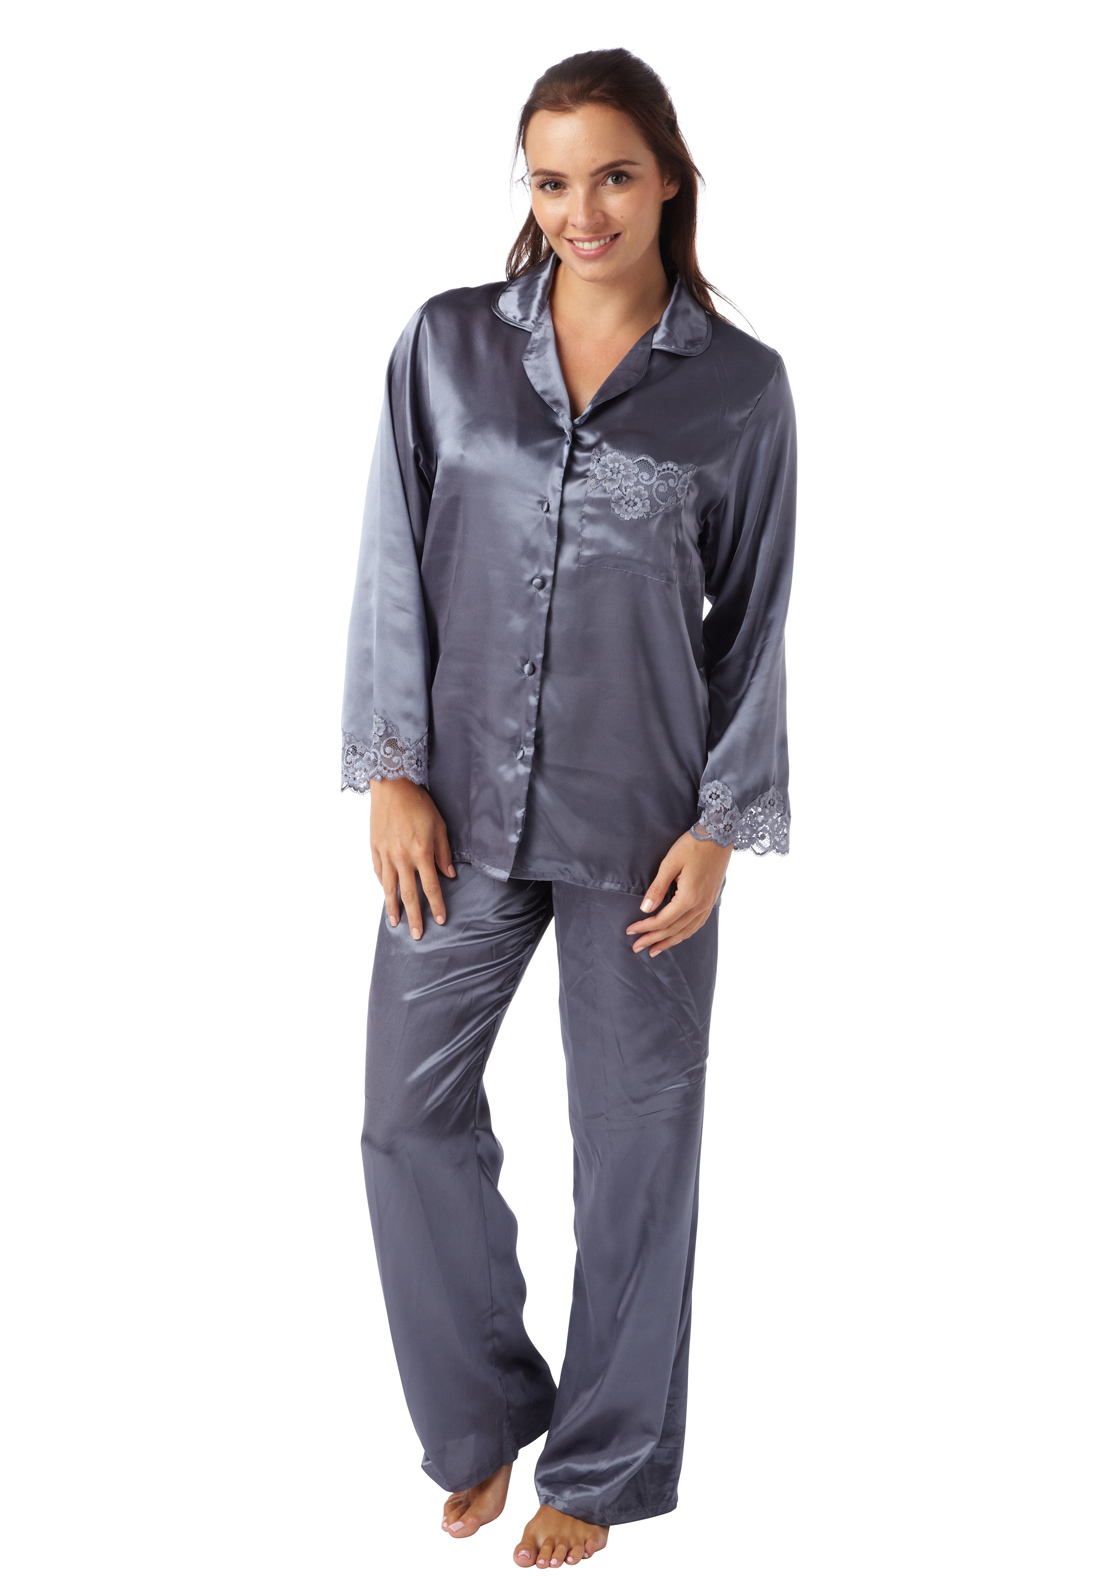 Indigo Sky Lace Trim Satin Pyjama Set, Charcoal